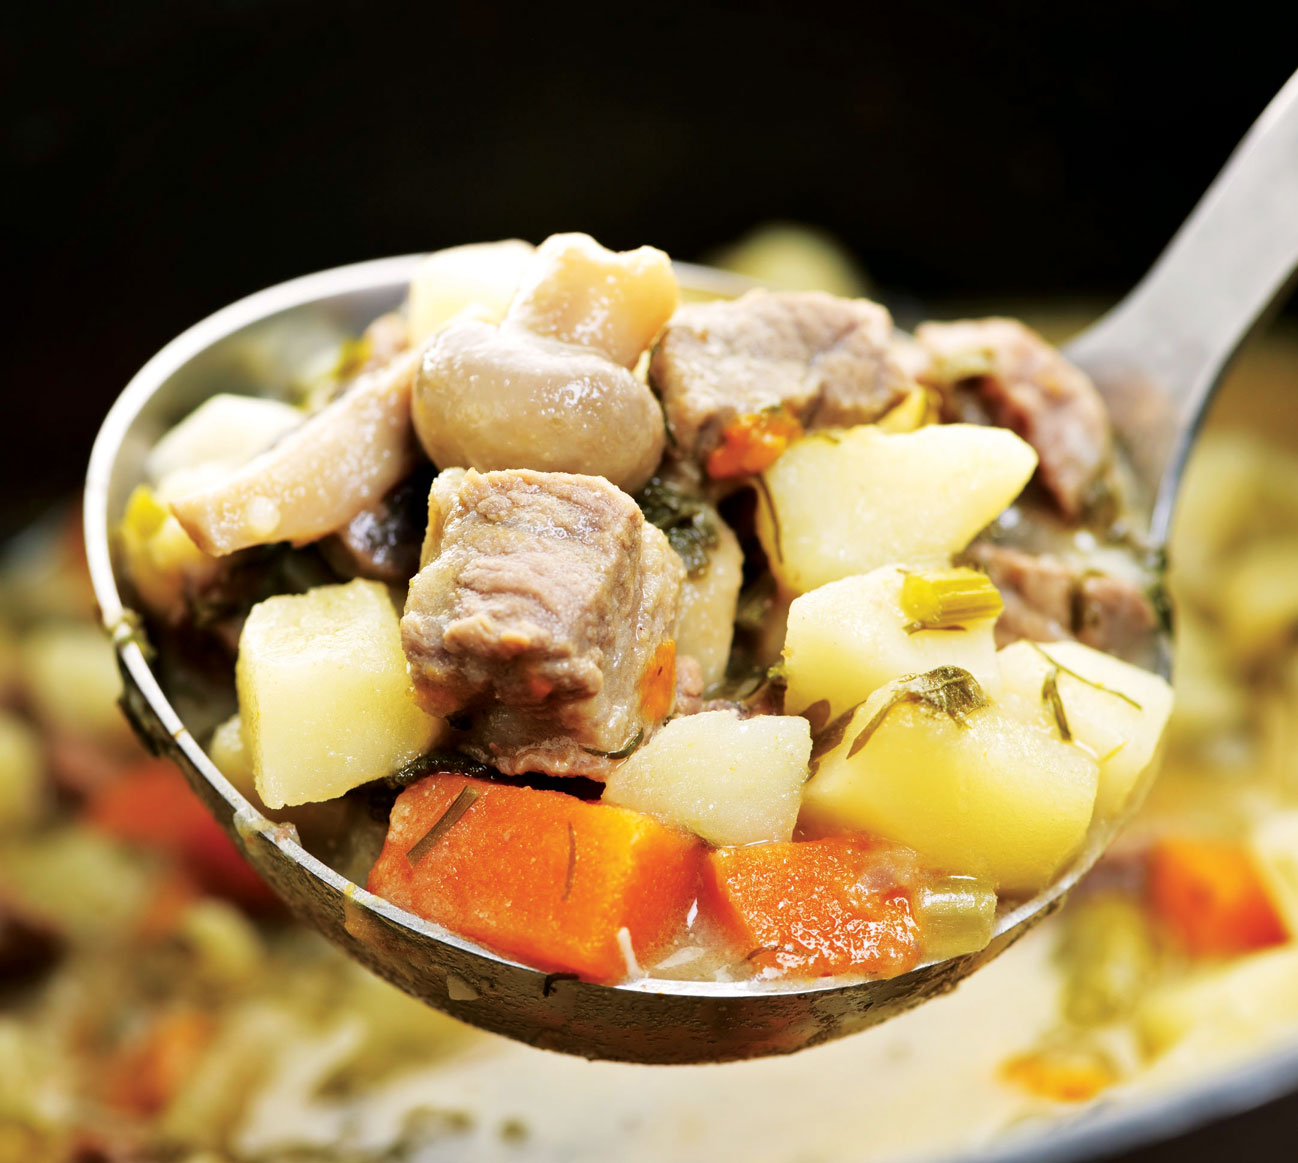 Irish Stew. (Images from www.babble.com, www.missigs.com)